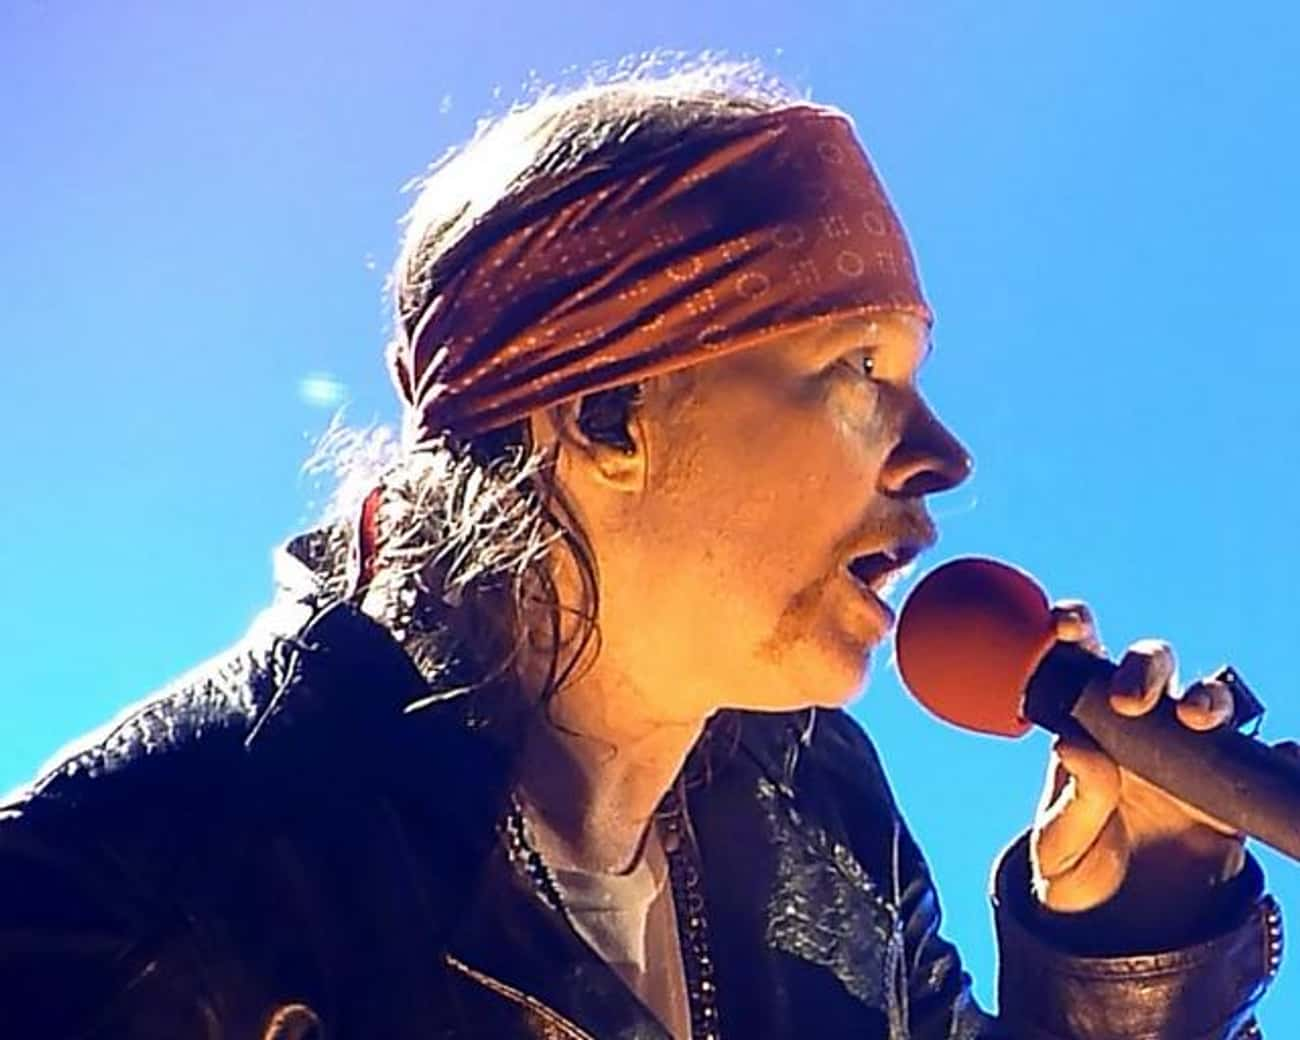 Axl Rose is listed (or ranked) 2 on the list Famous People Born in 1962